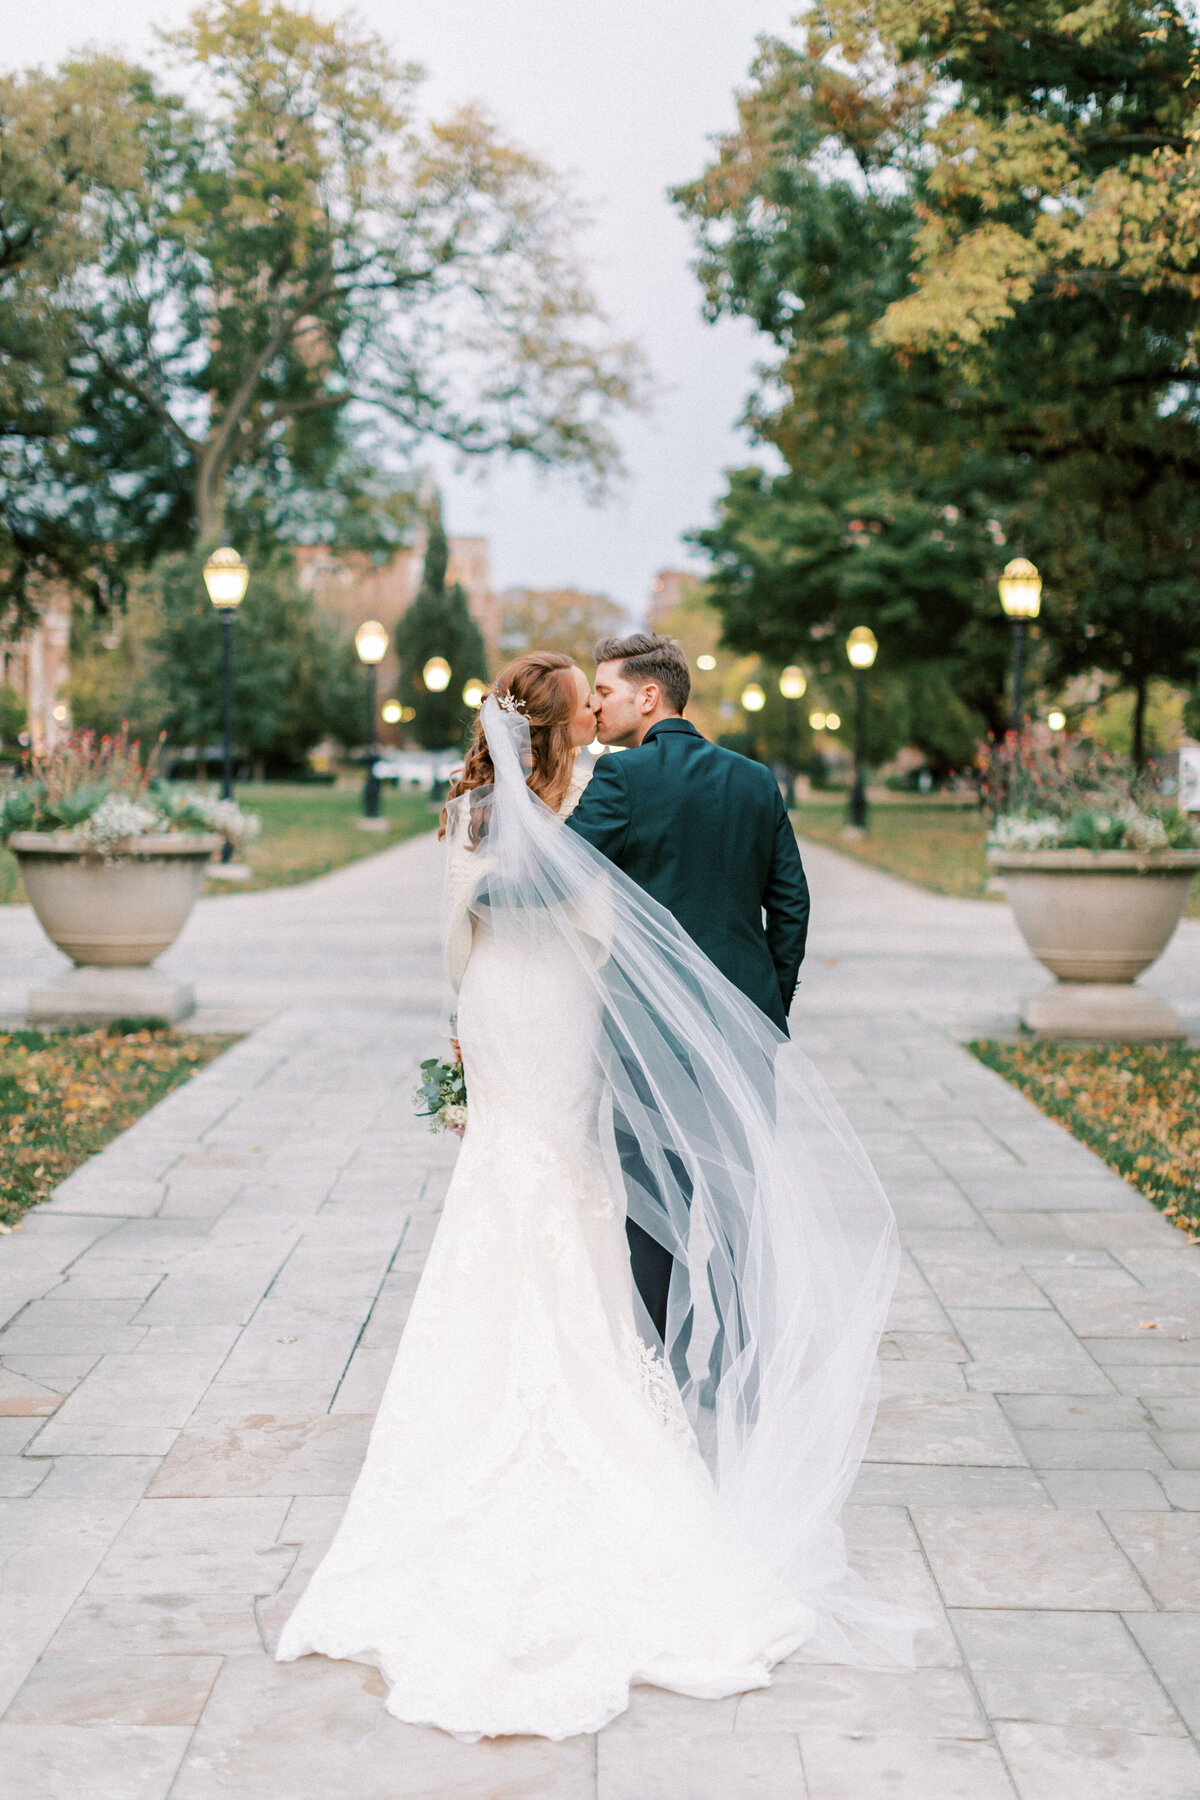 TiffaneyChildsPhotography-ChicagoWeddingPhotographer-Colleen&Ned-UniversityofChicago-98